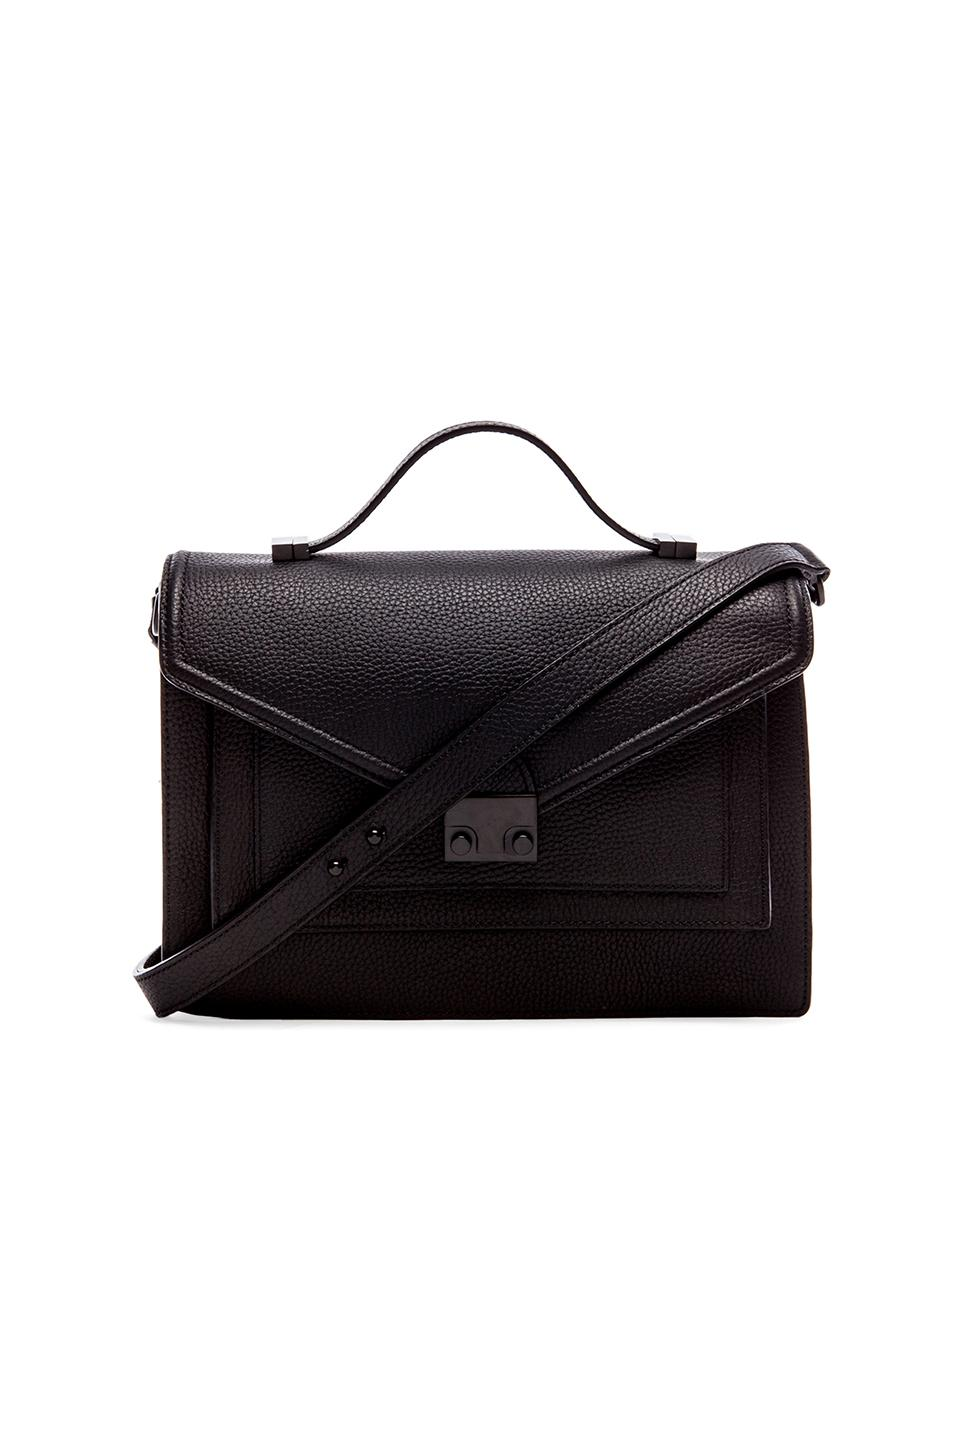 Loeffler Randall Rider Satchel in Black